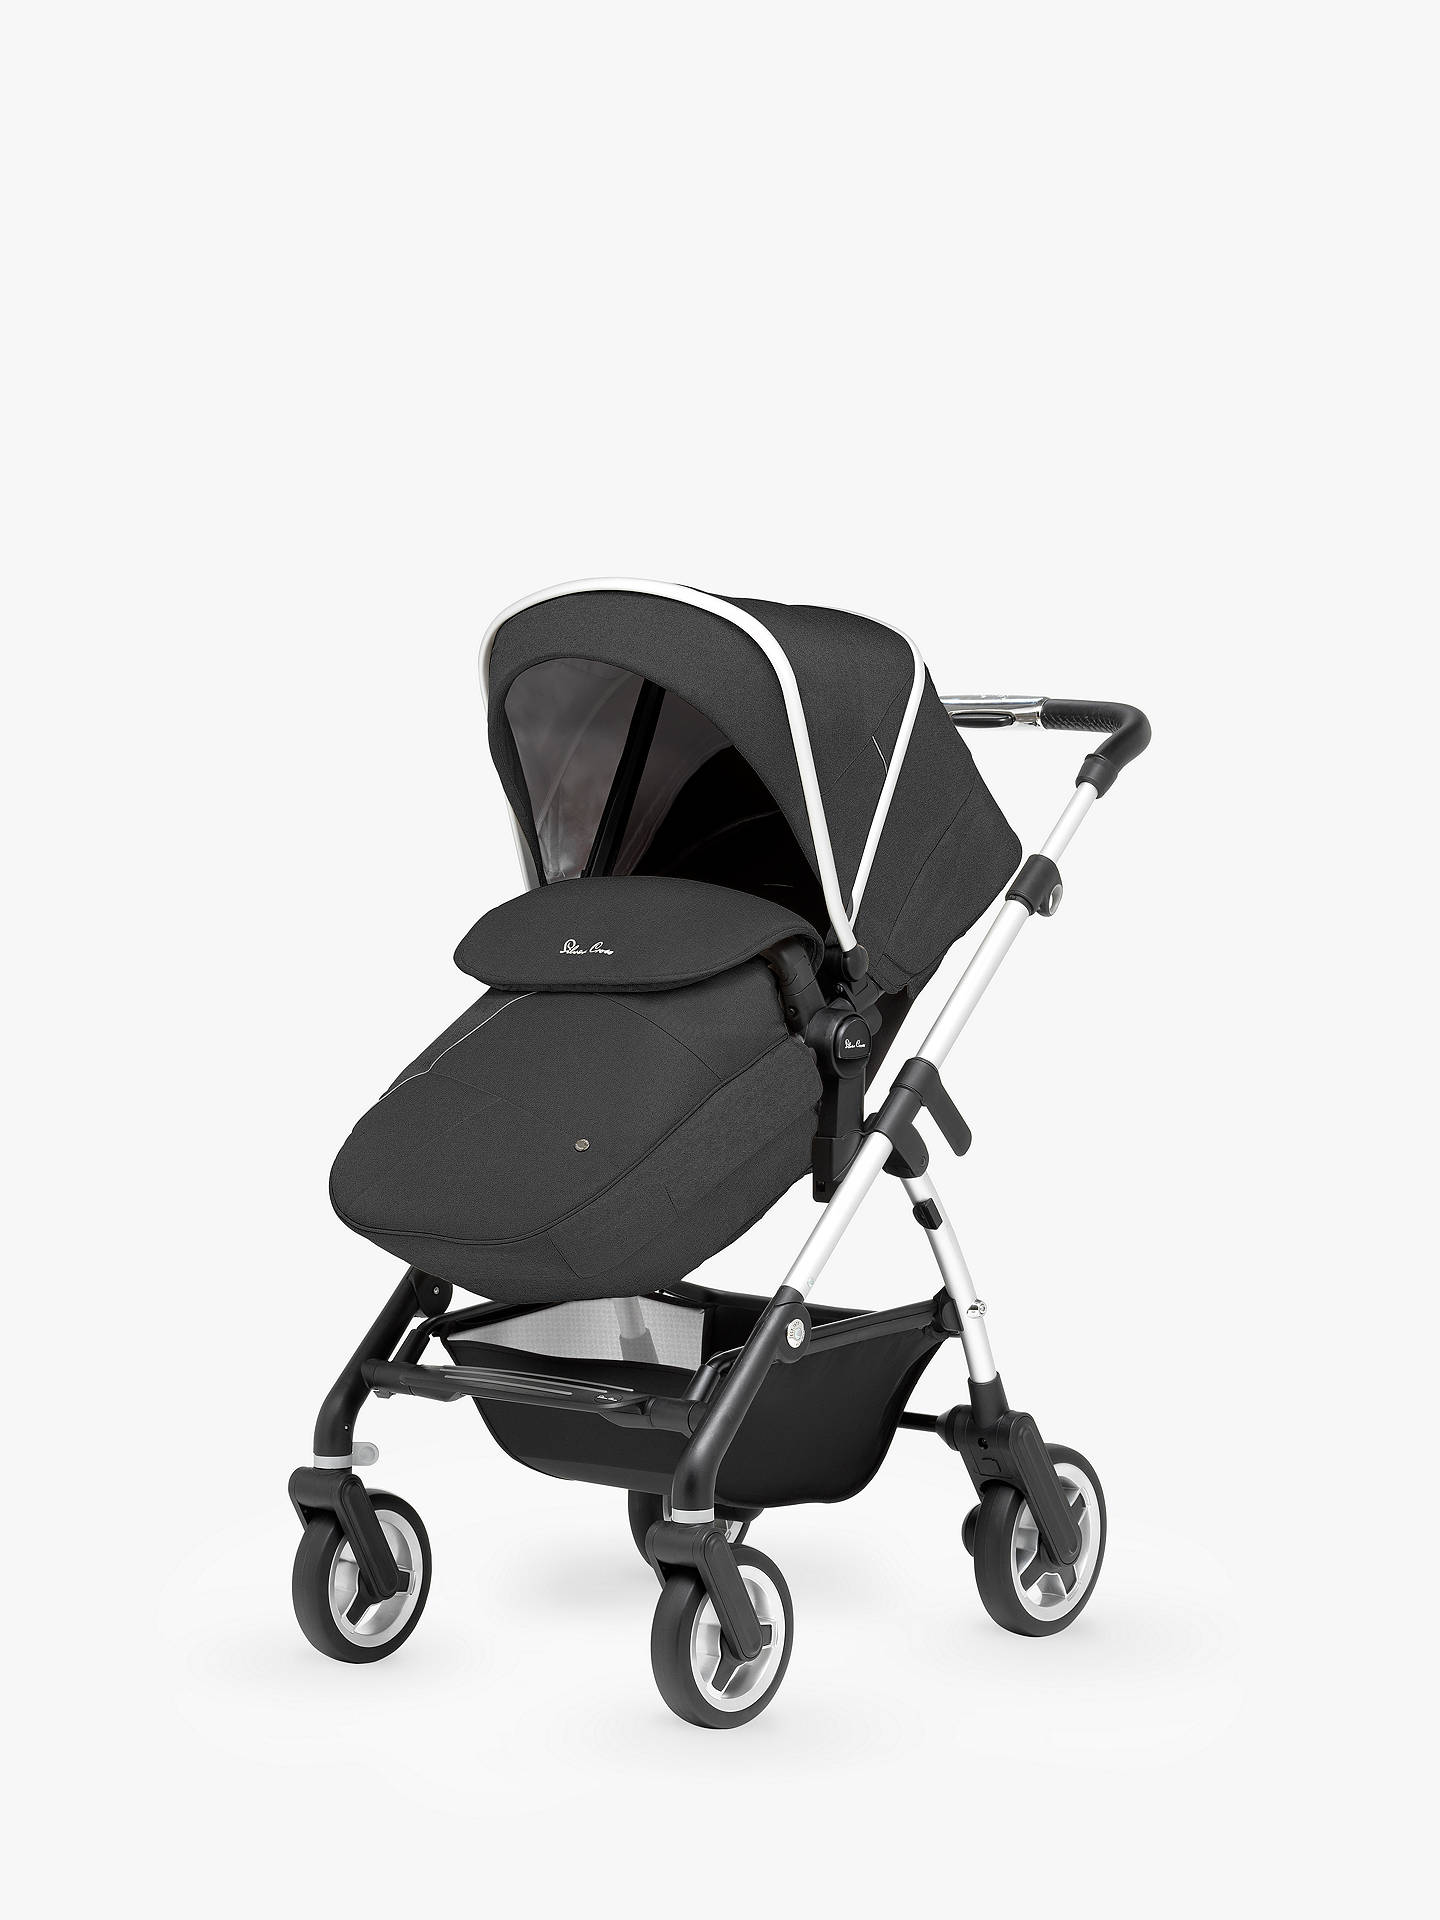 BuySilver Cross Wayfarer Pushchair, Chassis, Carrycot and Essentials Pack, Onyx Black Online at johnlewis.com